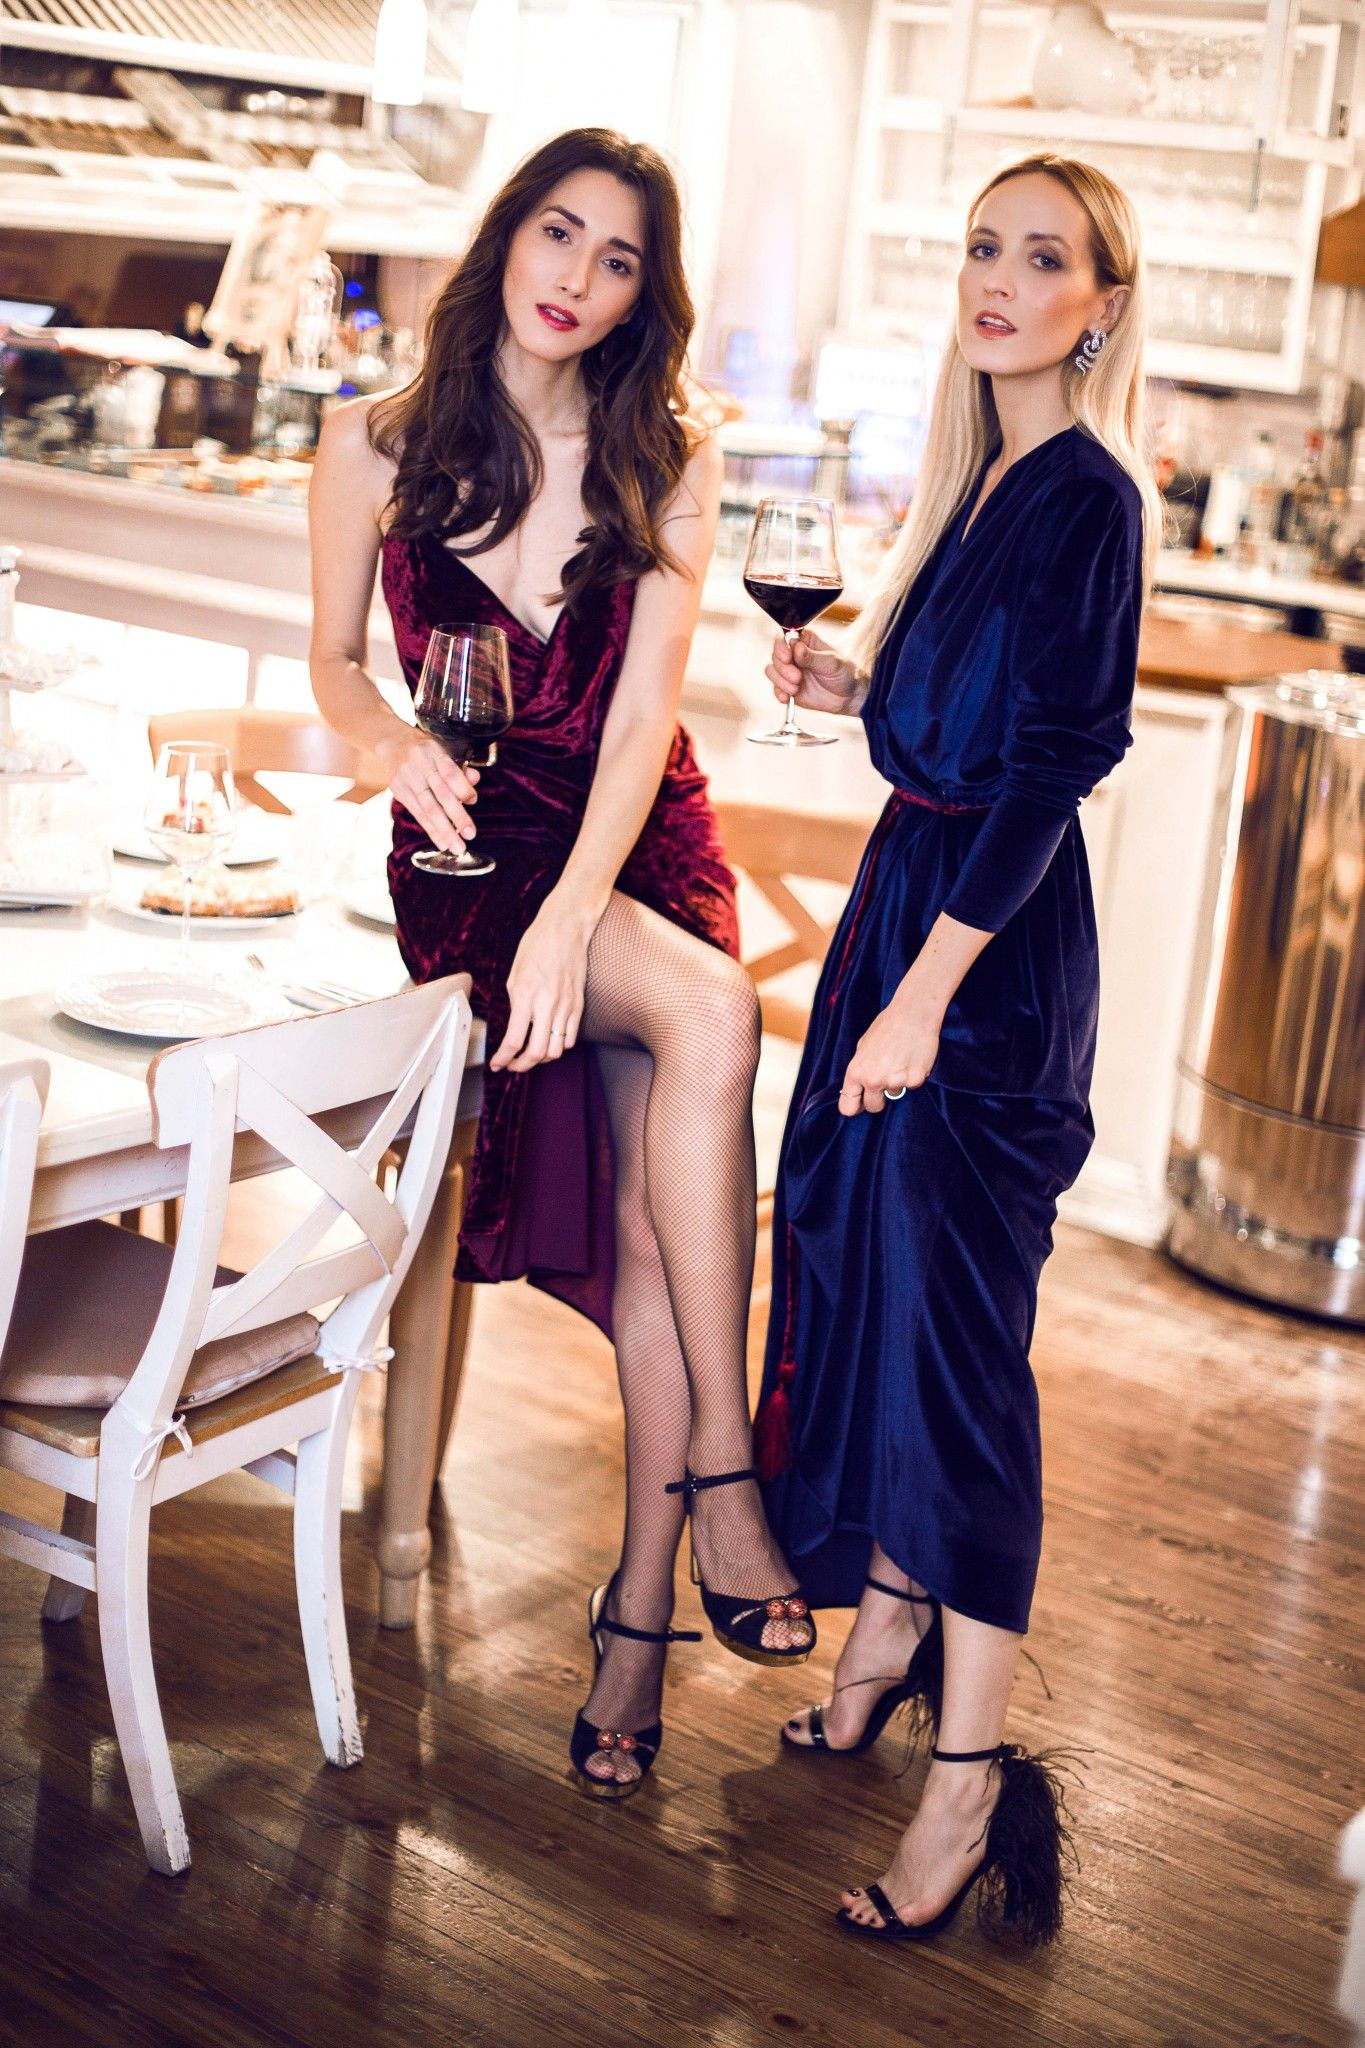 2fior_di_latte_fabulous_muses_diana_enciu_alina_tanasa_fashion_blog_christmas_dinner